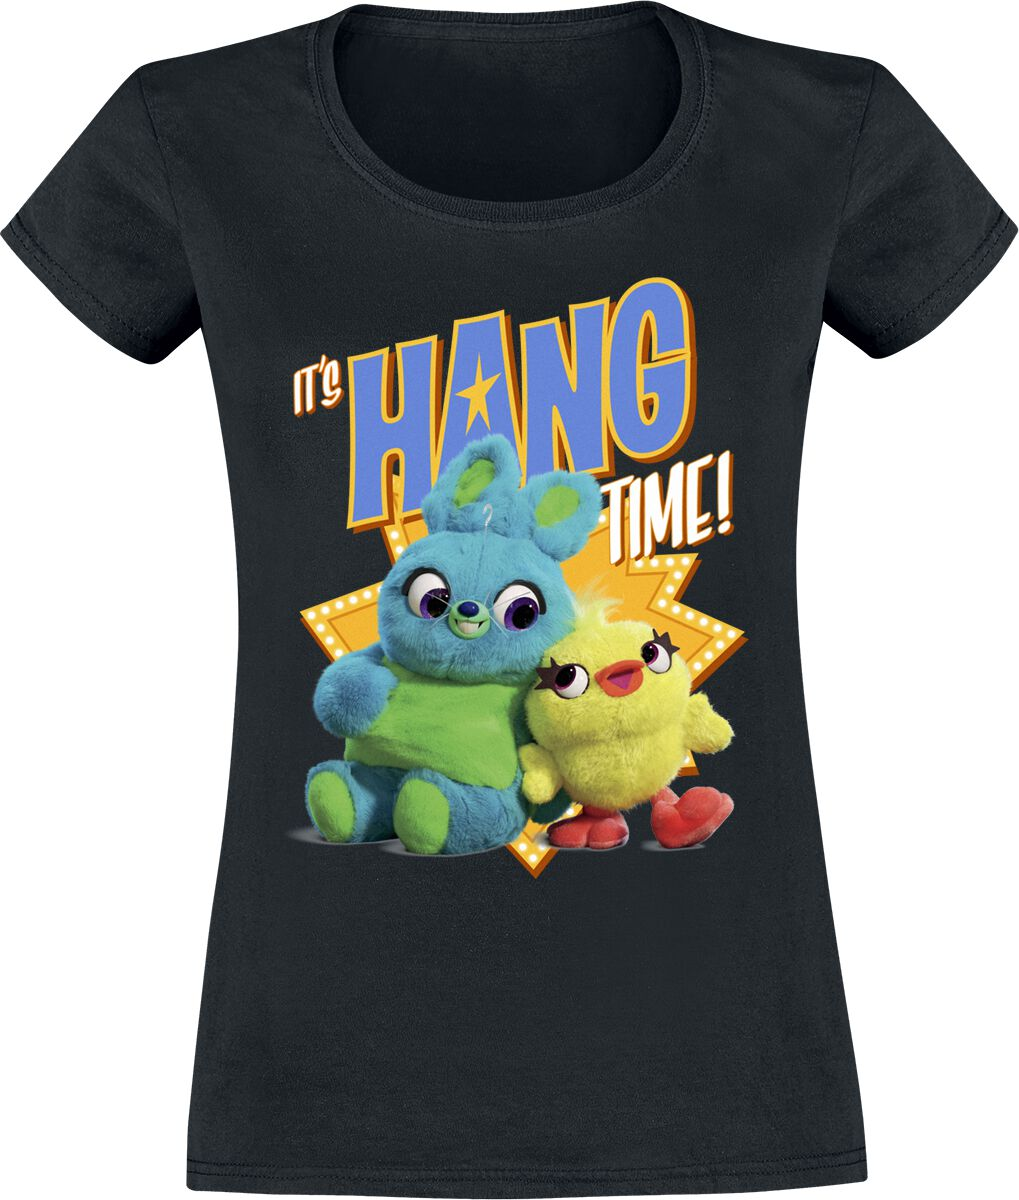 Toy Story 4 - Hang Time Girl-Shirt schwarz